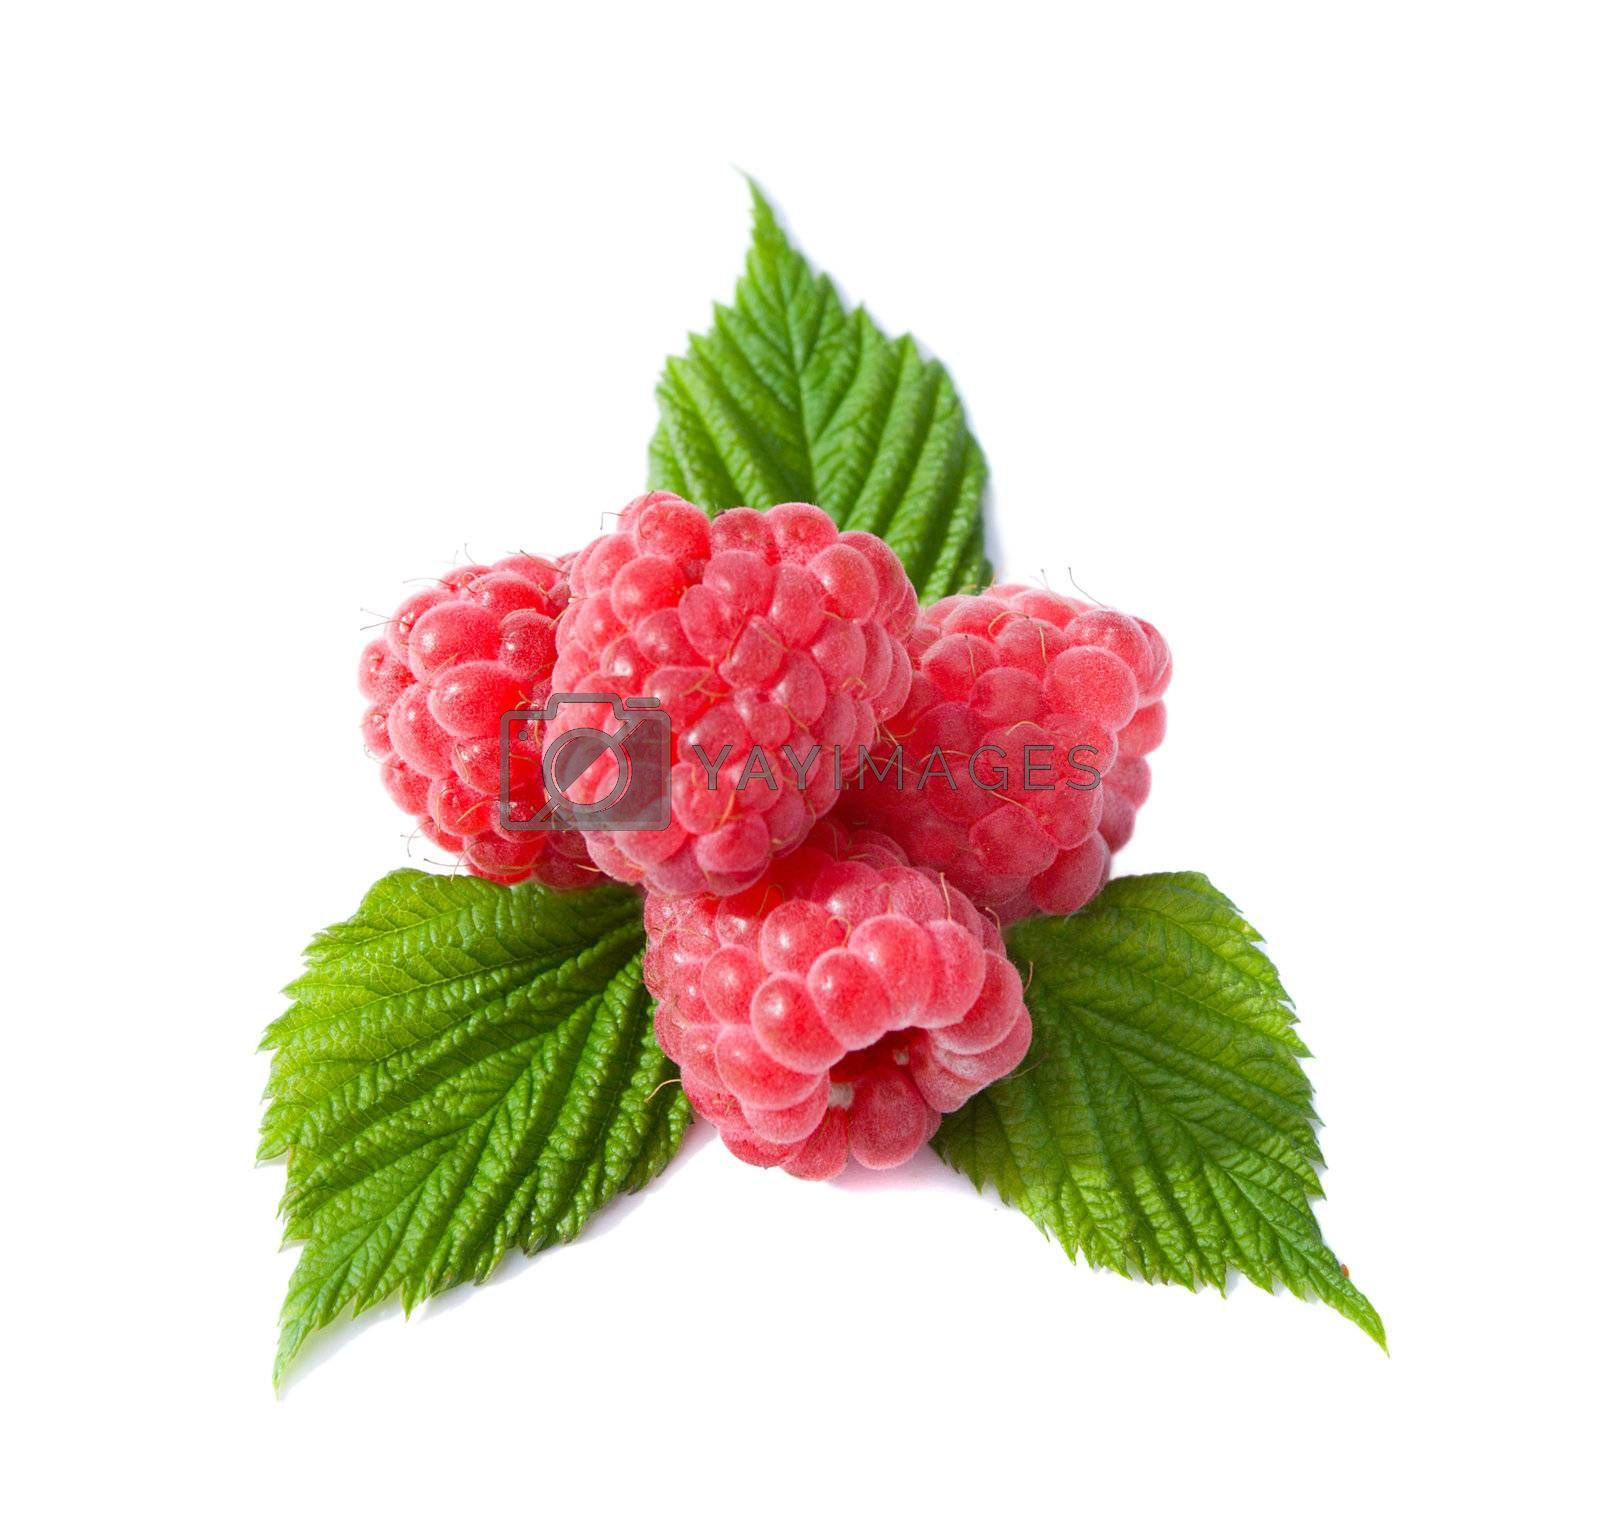 heap of ripe raspberries with leaves, isolated on white